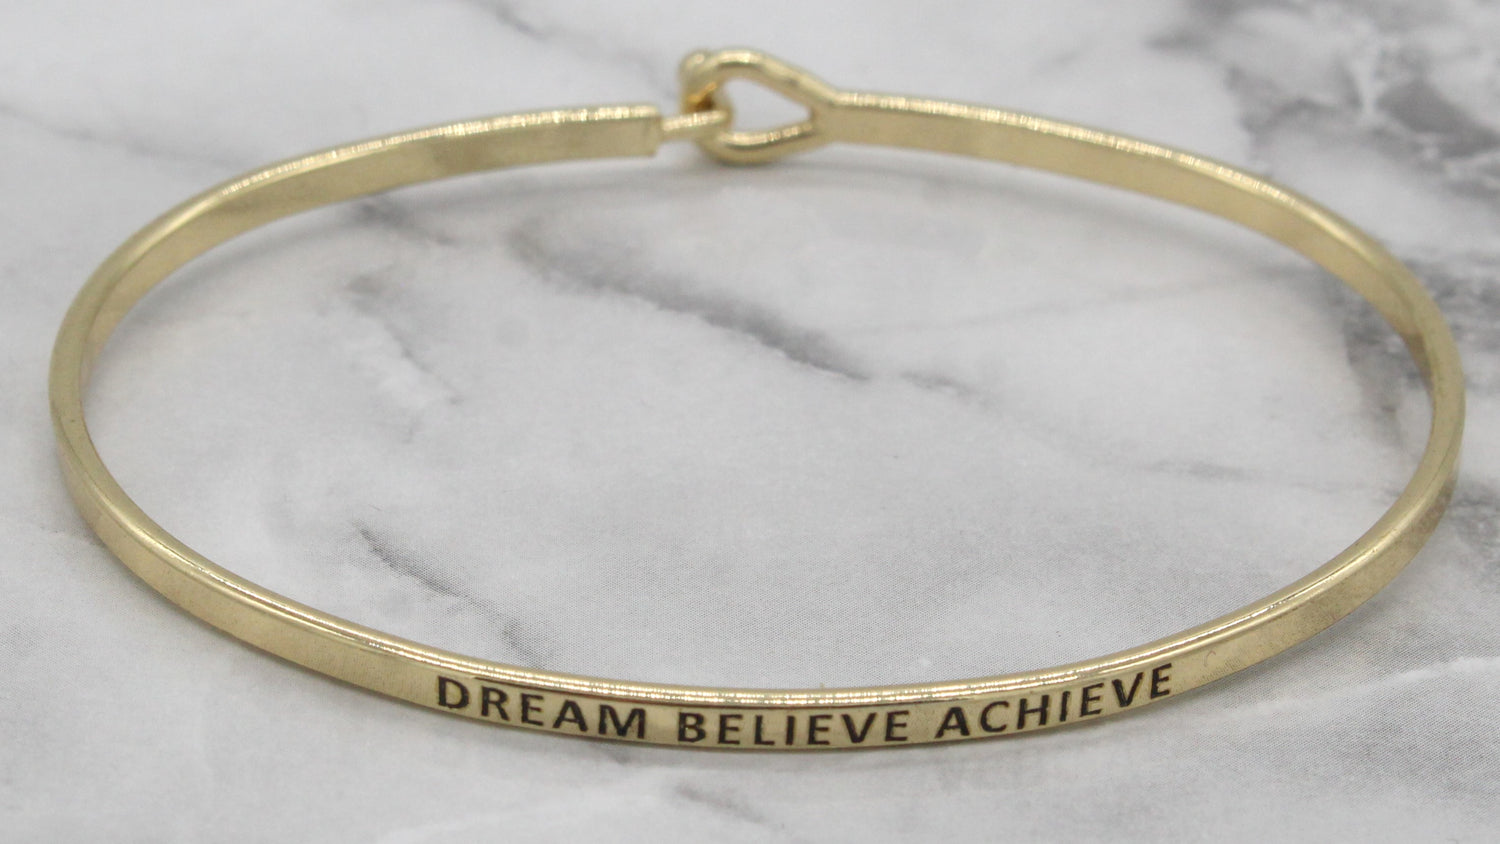 'Dream Believe Achieve' Dainty Bangle Bracelet-Gold